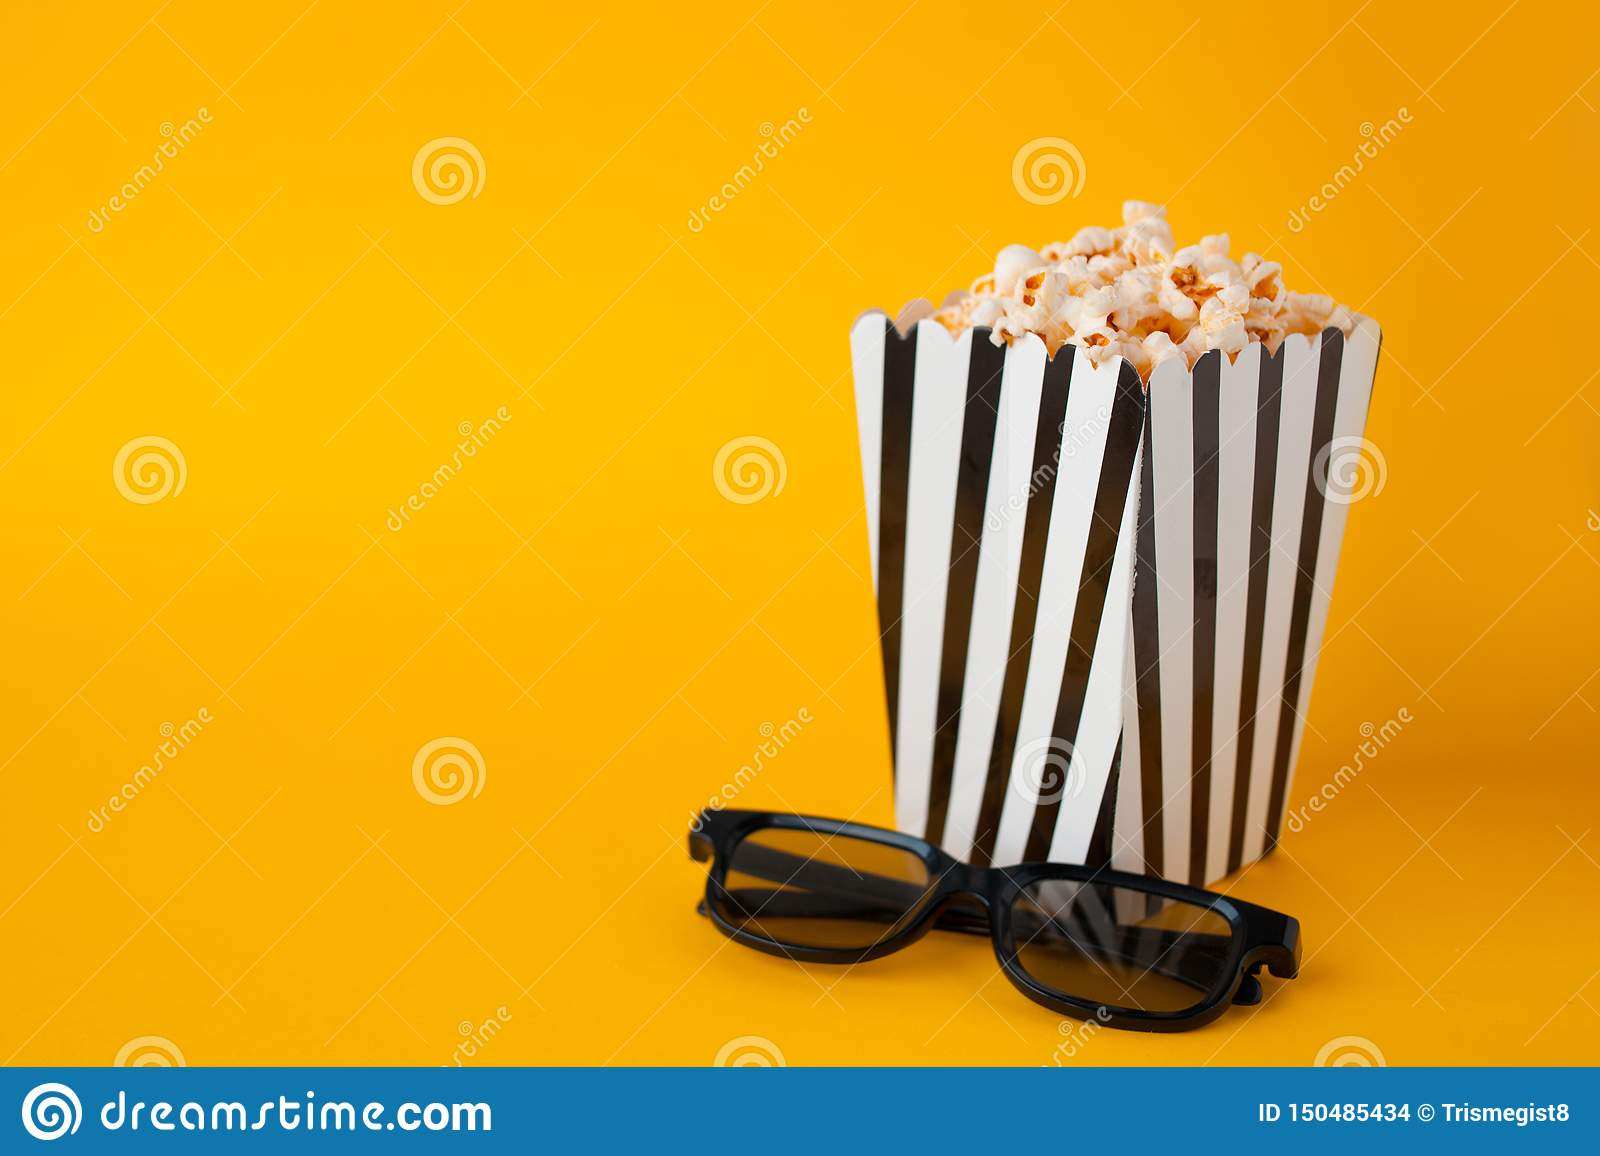 Popcorn in paper bag stand on yellow background top view fnd black 3d glasses